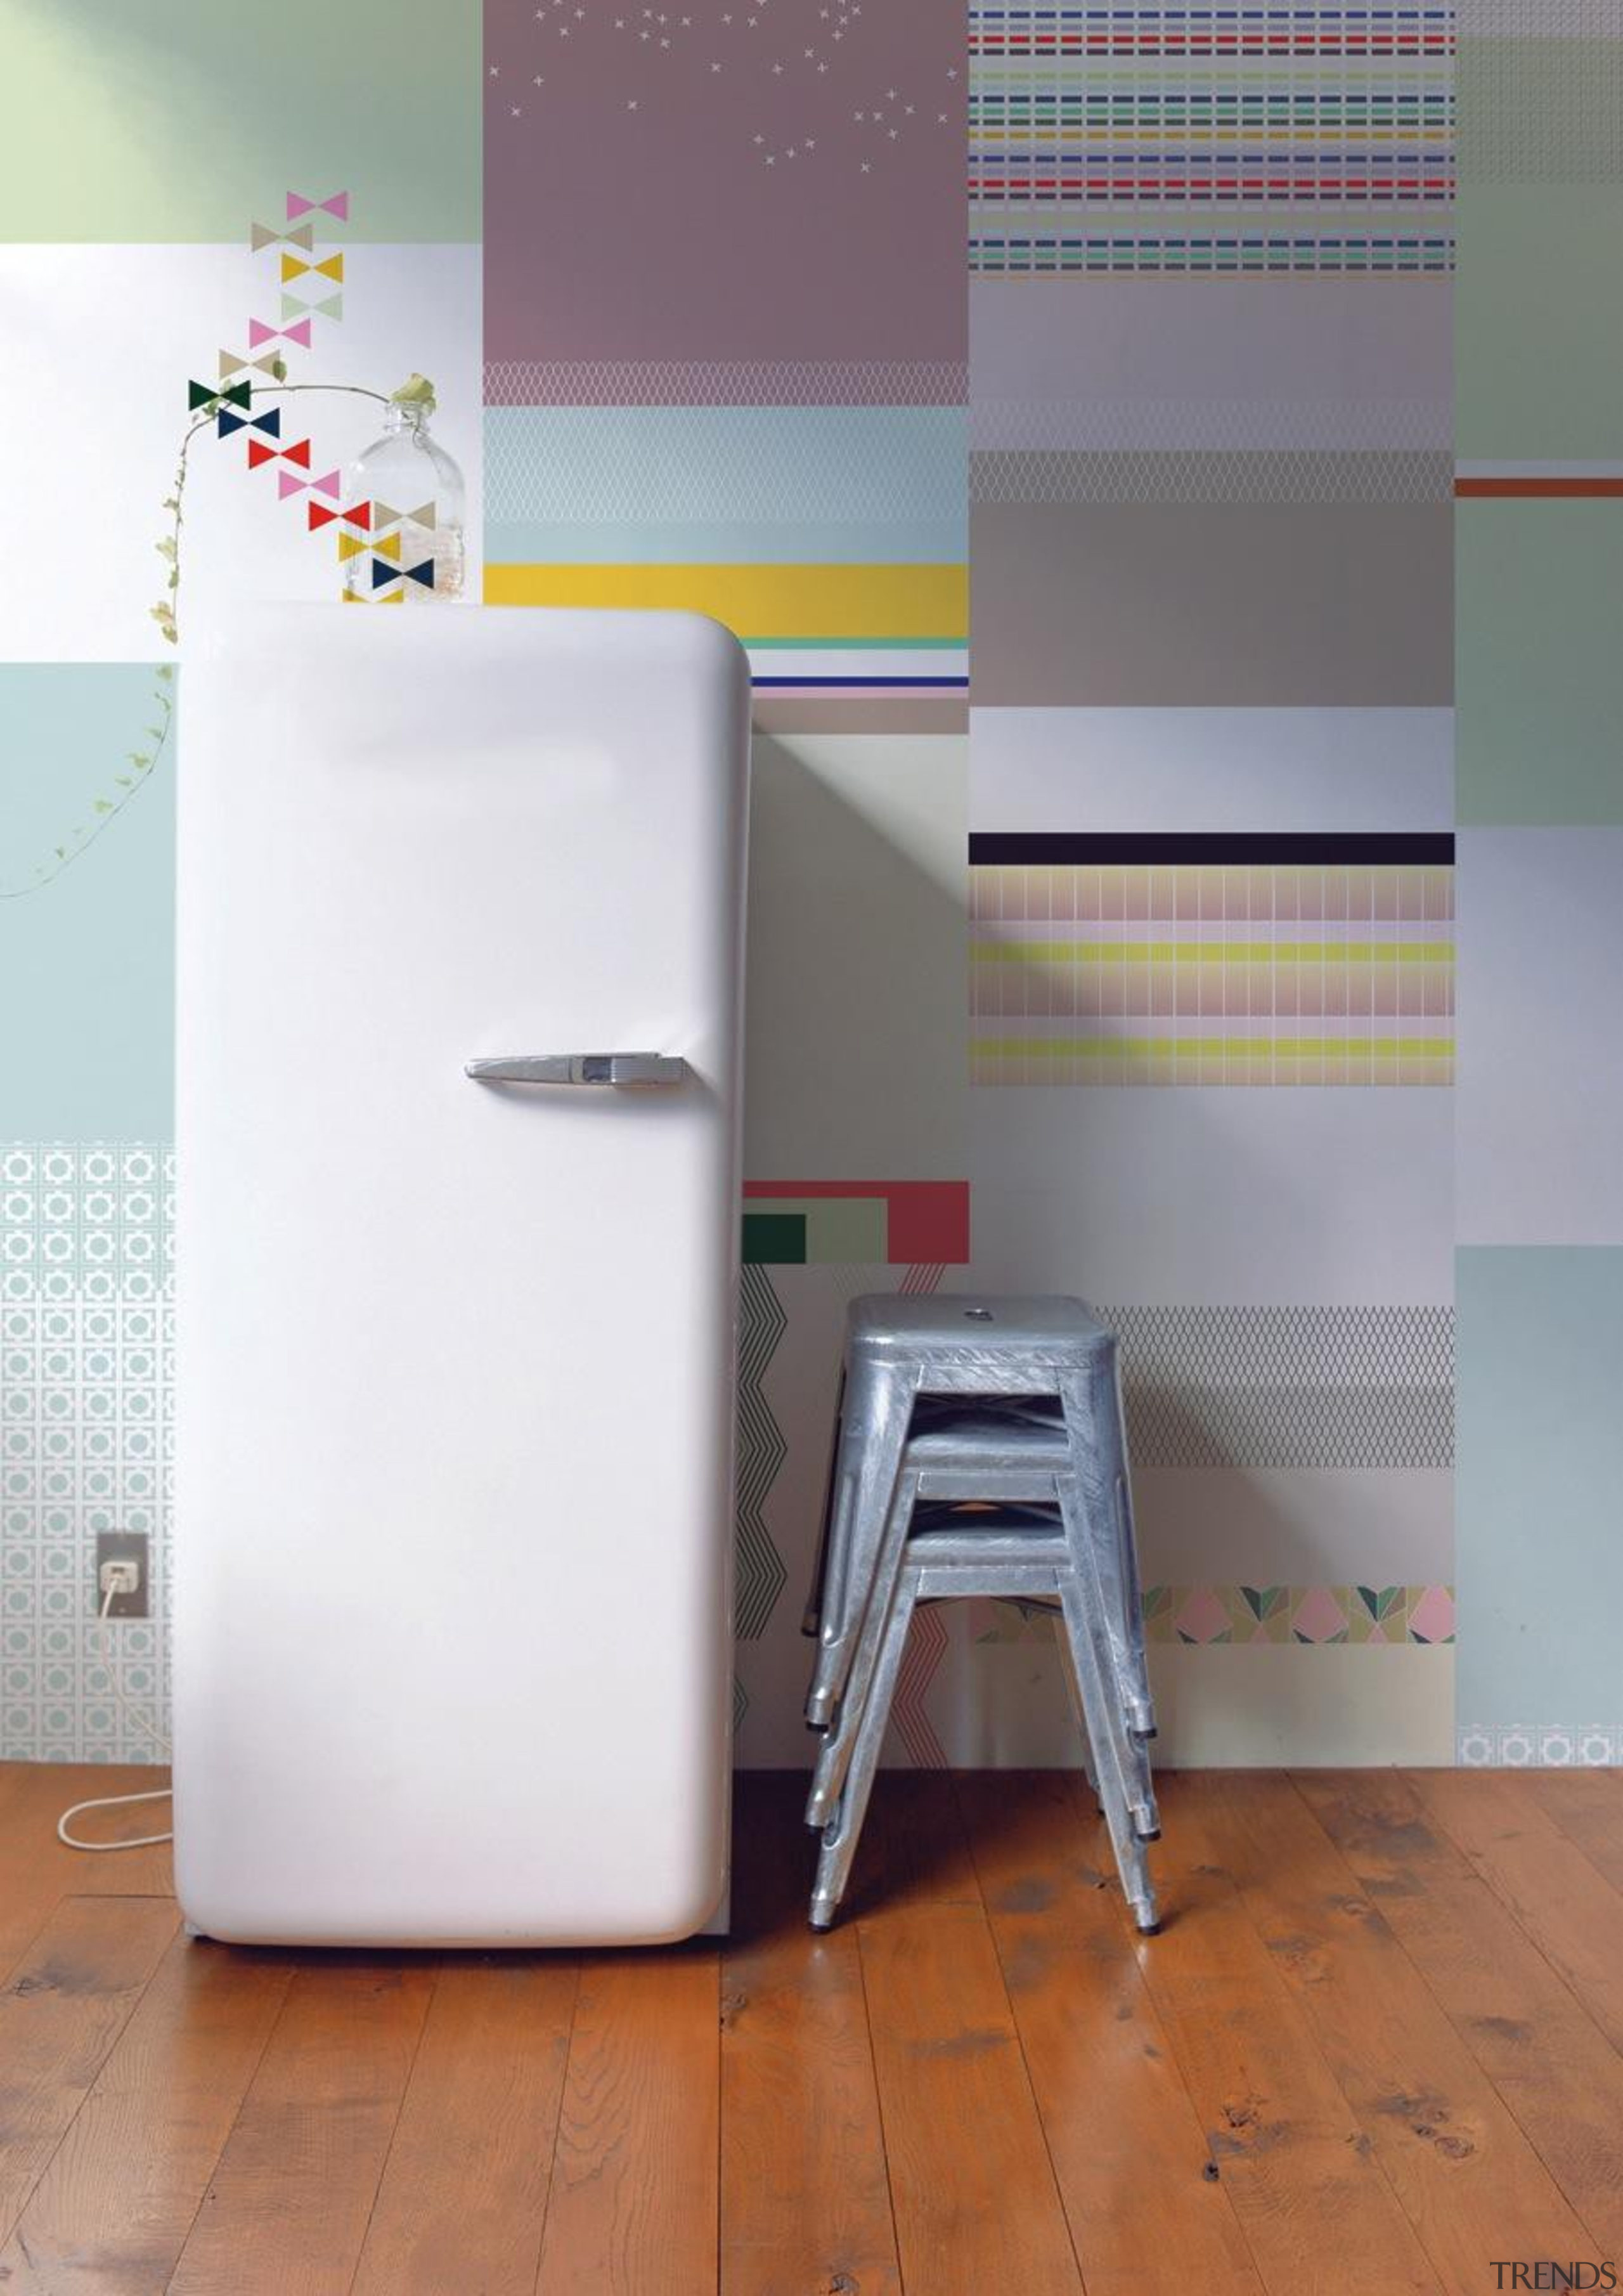 One of the challenges when putting up wallpaper floor, flooring, furniture, interior design, product, product design, shelf, shelving, table, tile, wall, gray, white